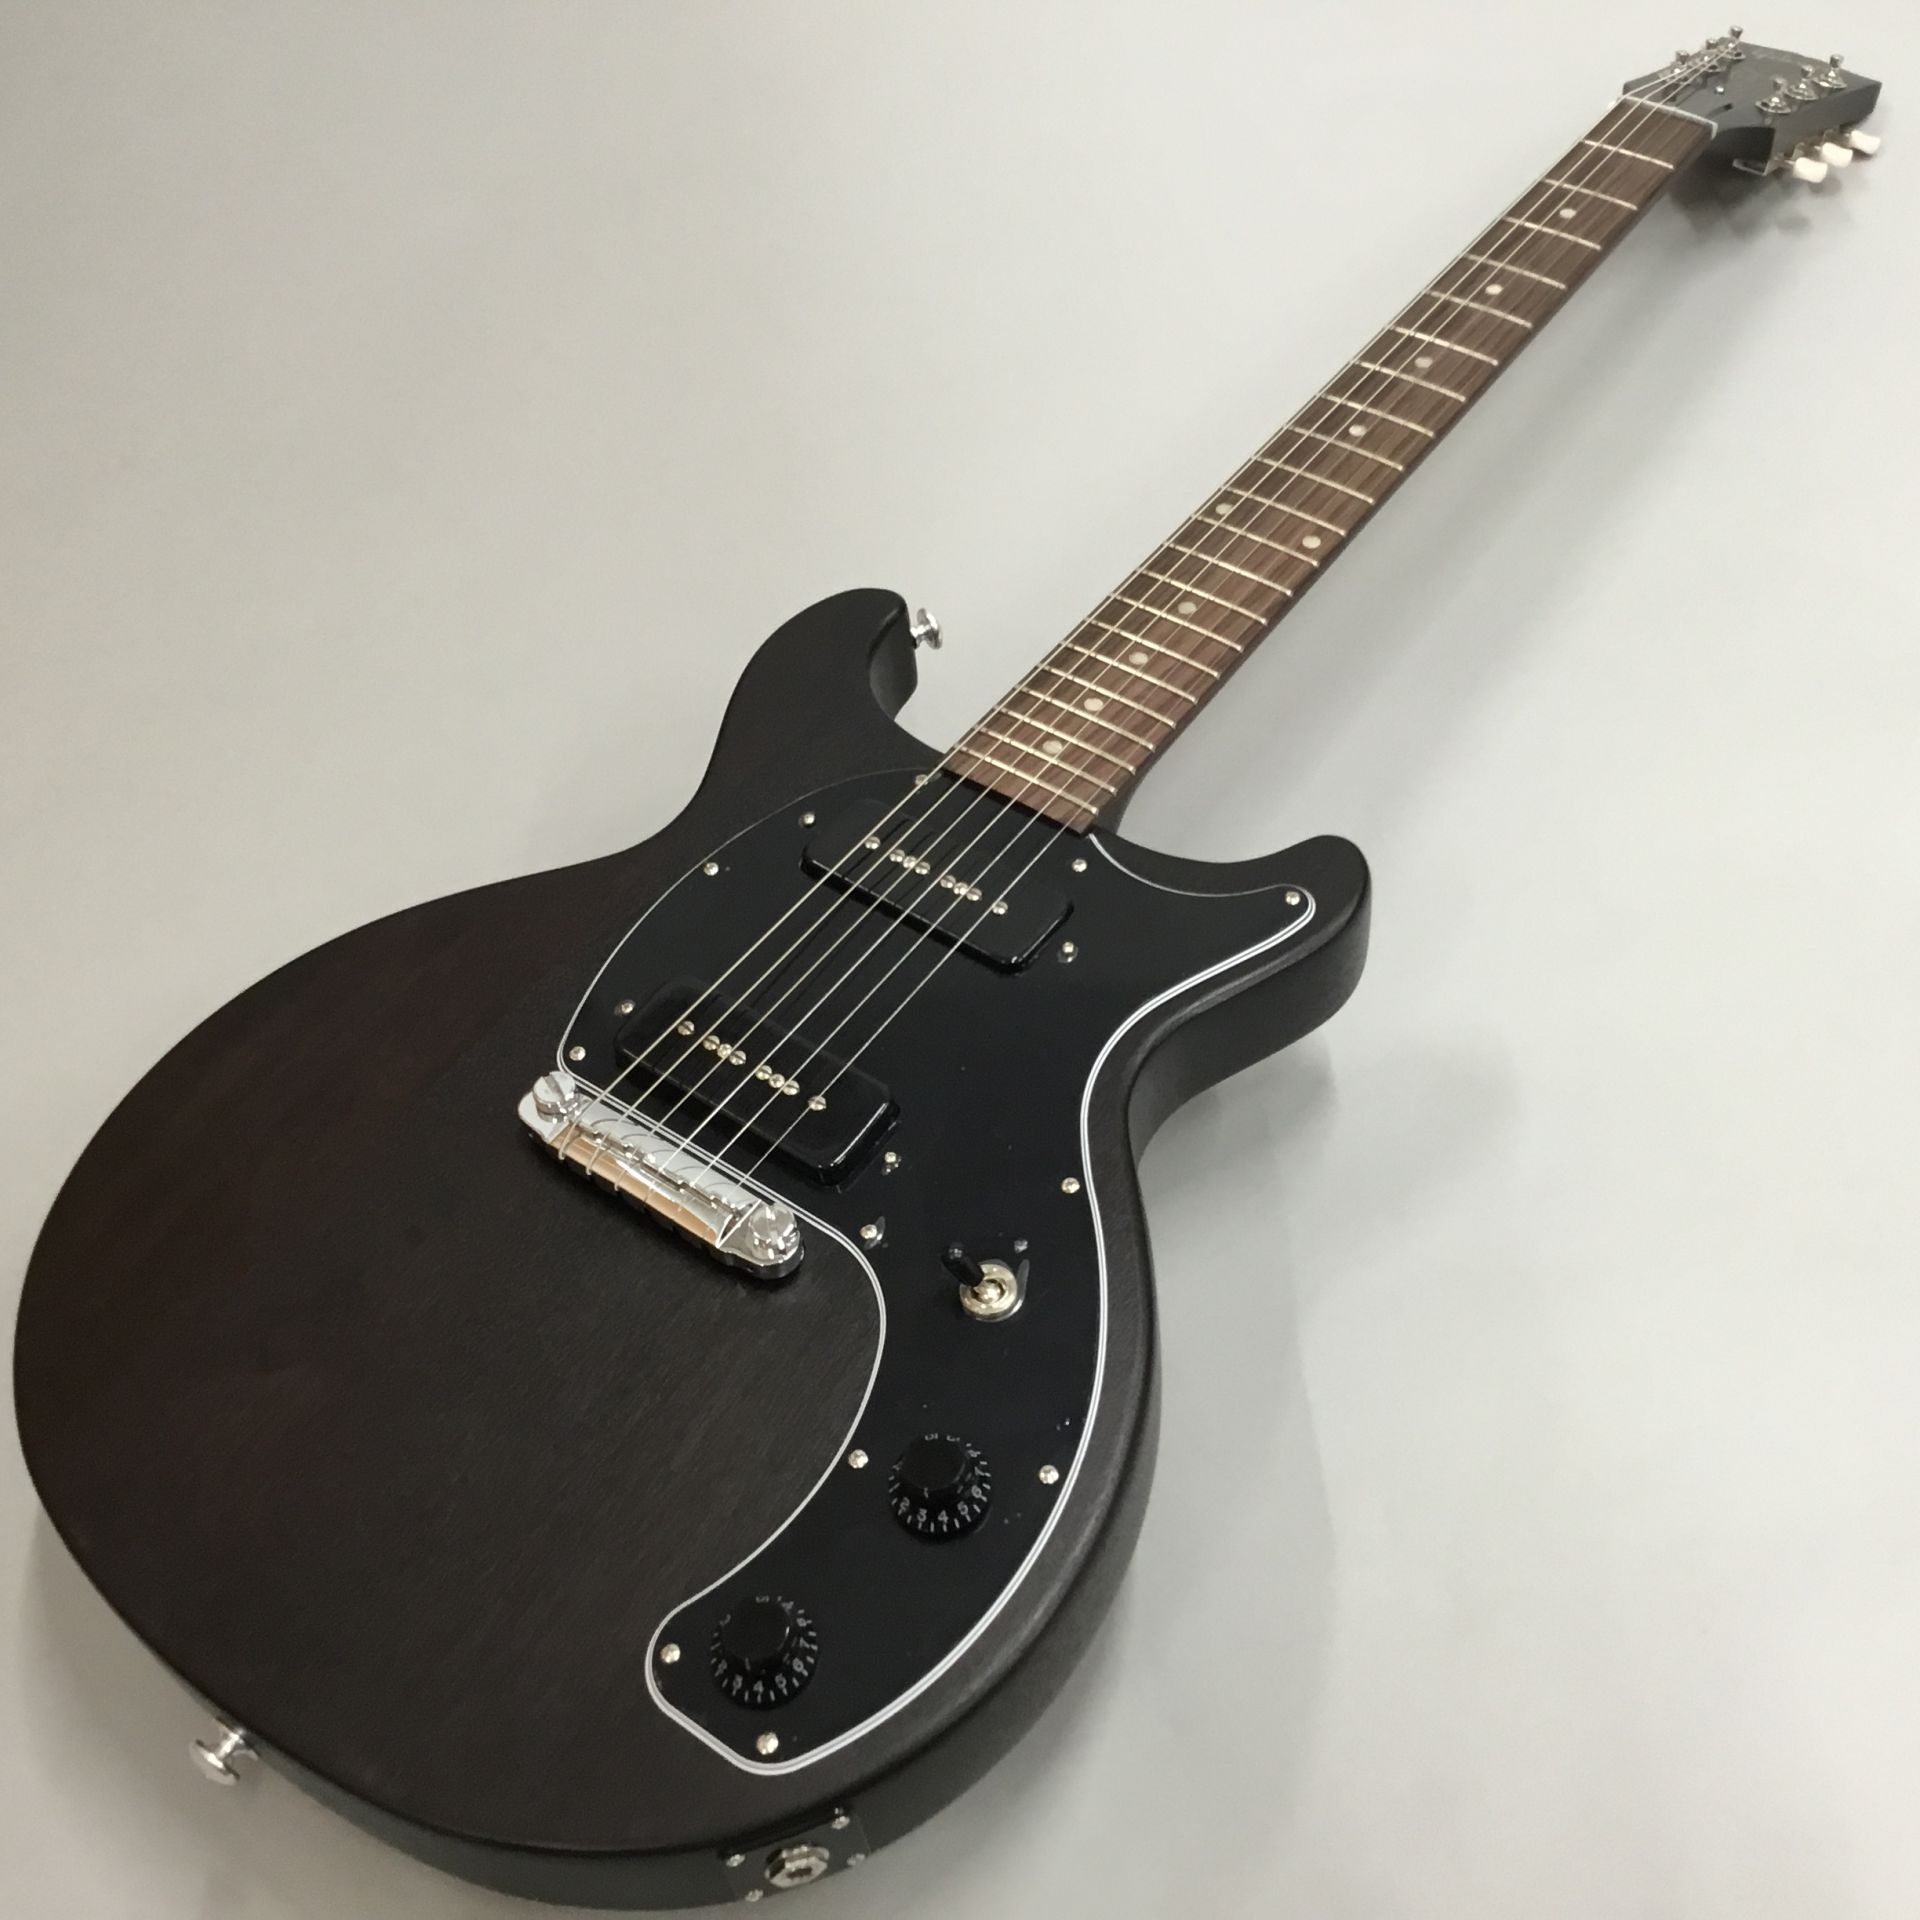 Les Paul Special Tribute DCのボディトップ-アップ画像